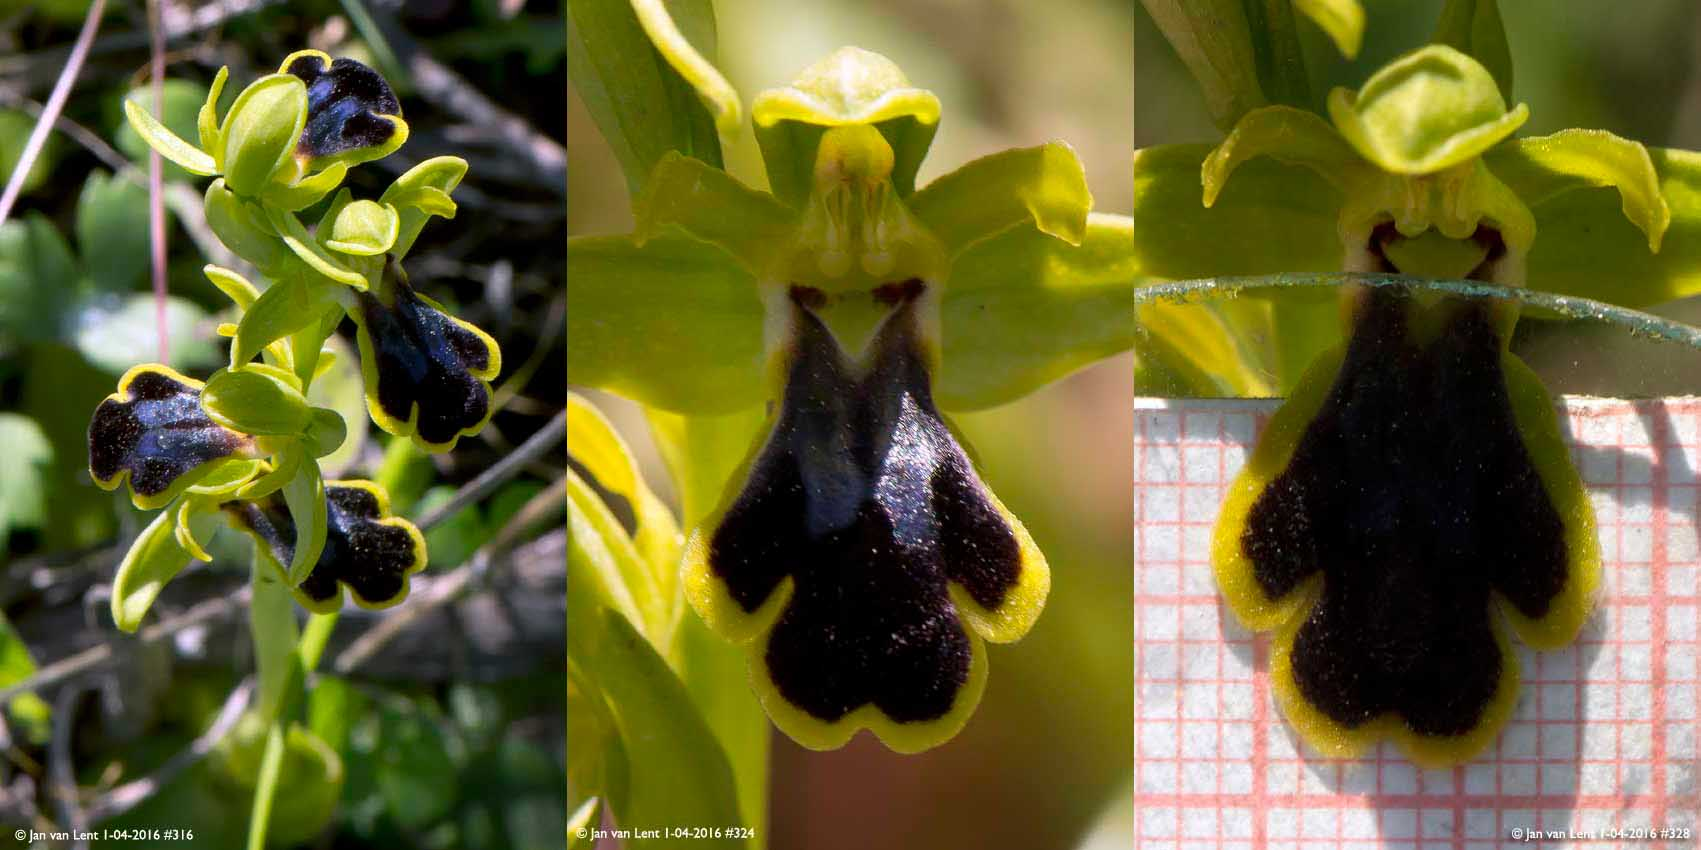 Ophrys persephonae or urteae? Avlona, © Jan van Lent 1-04-2016 #316, #324, #328 LipL12.5mm